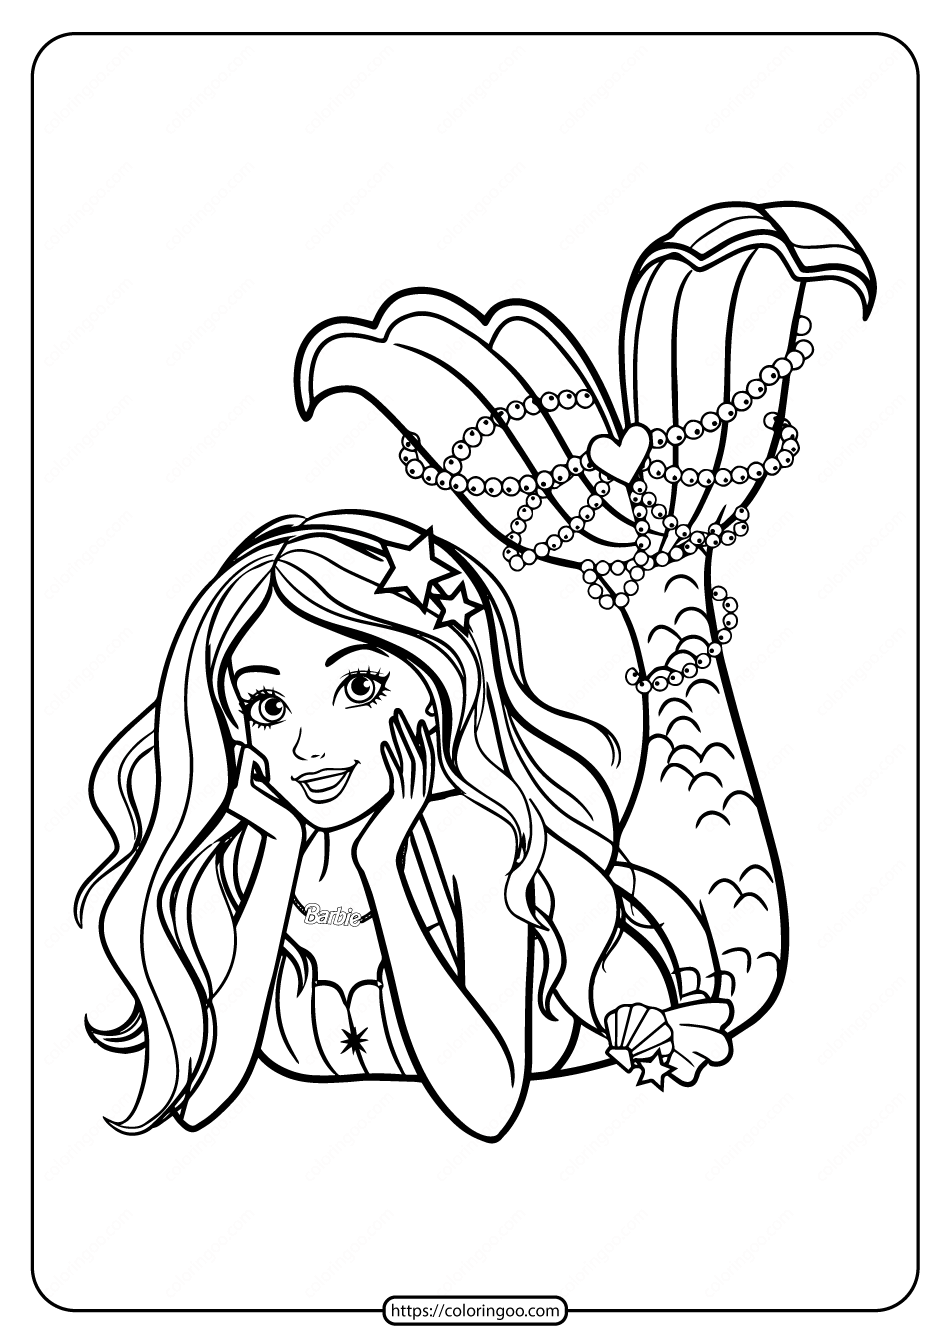 Mermaid Barbie With Cool Haircut Coloring Page Mermaid Coloring Book Mermaid Coloring Barbie Coloring